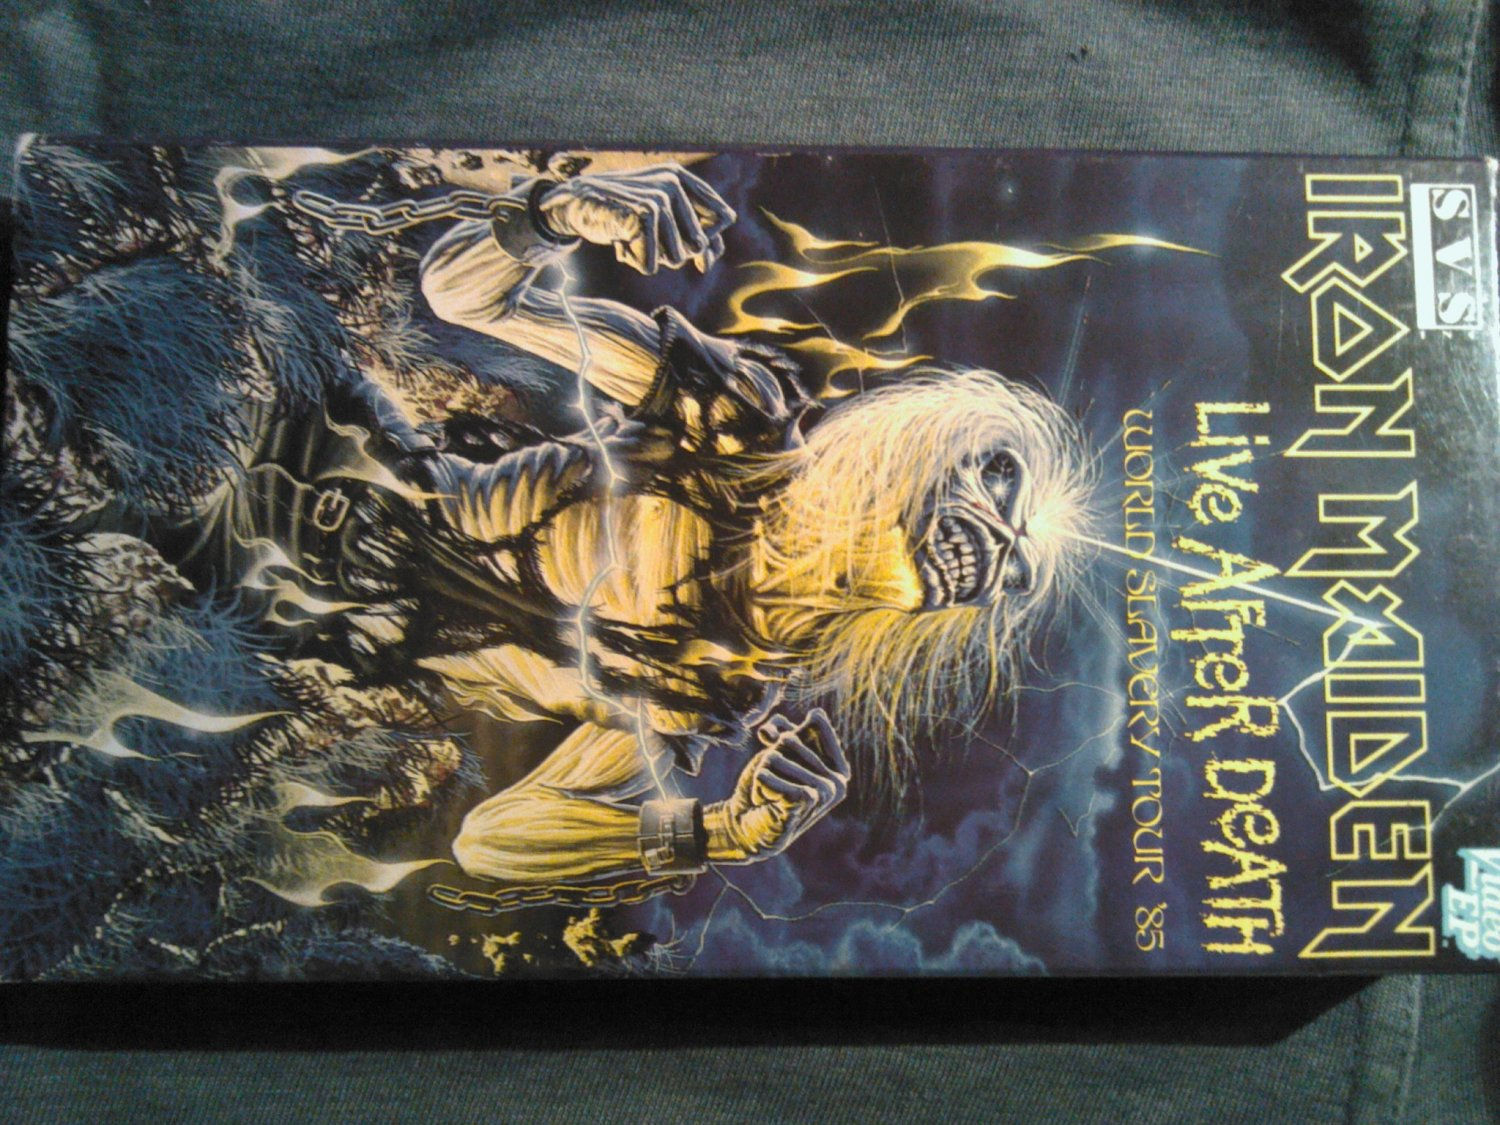 VHS IRON MAIDEN Live After Death 1985